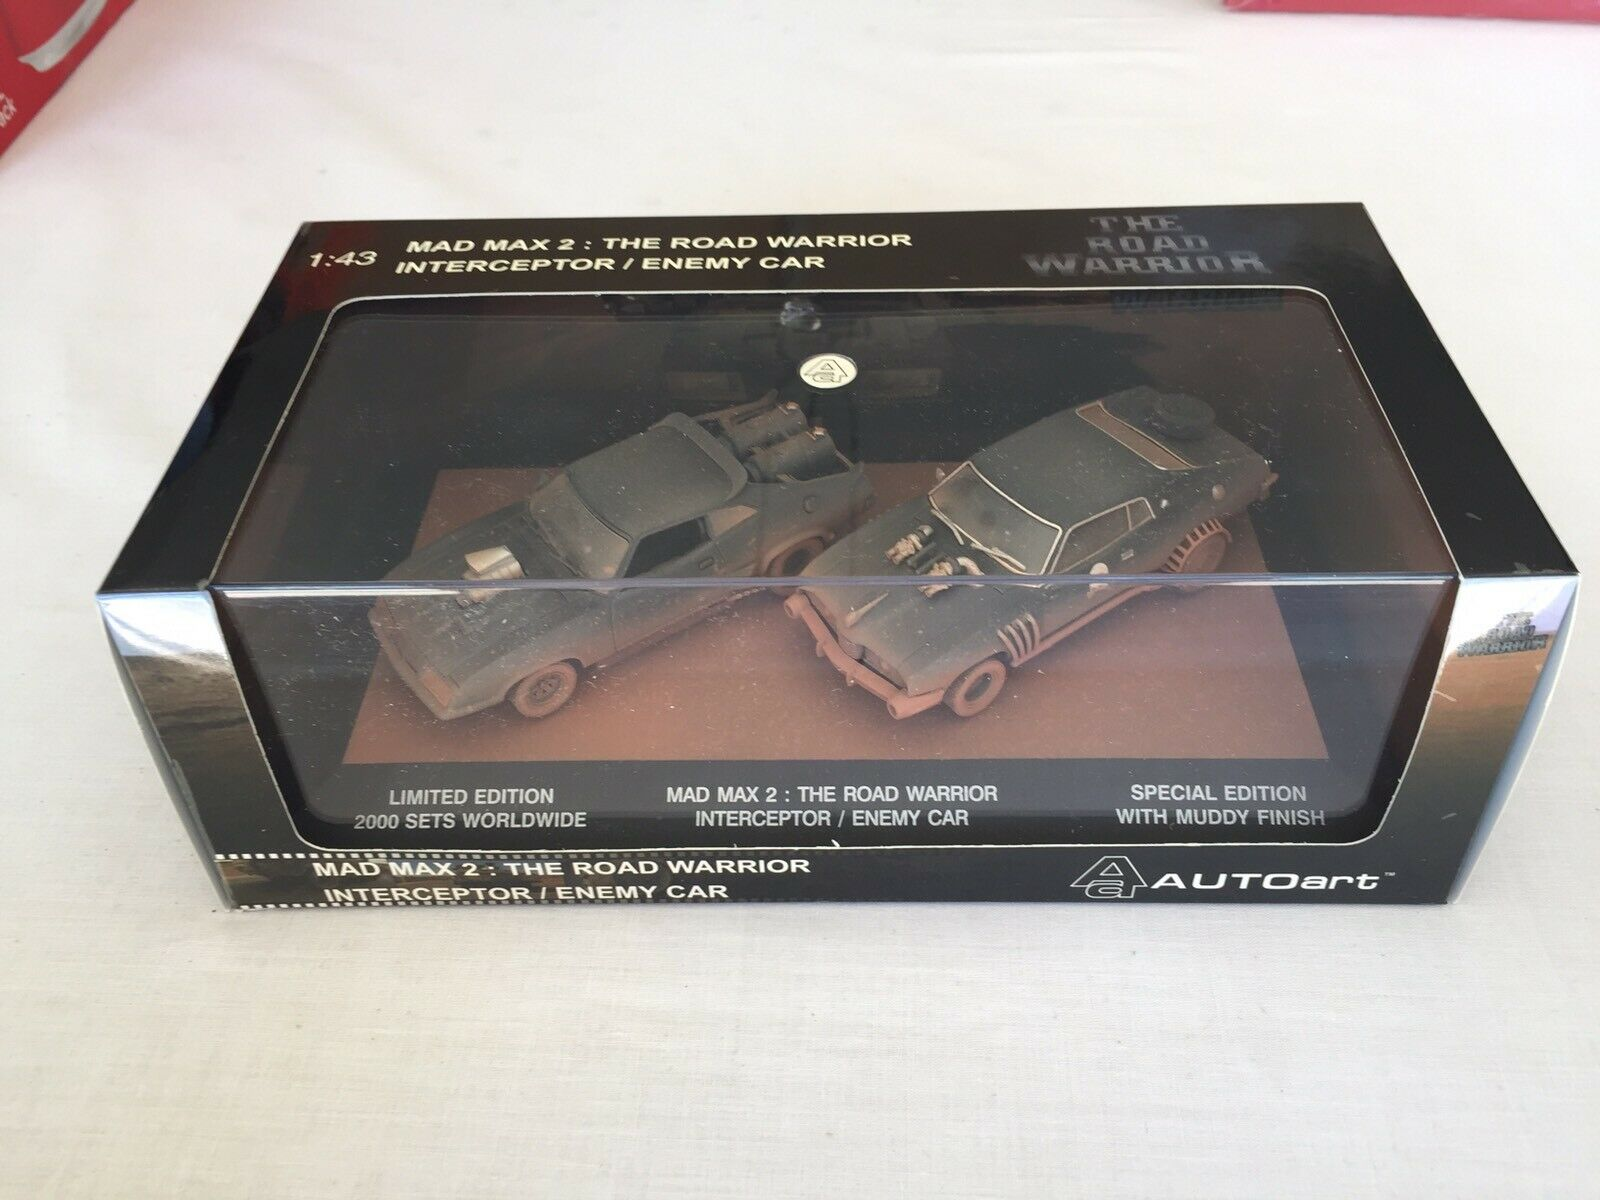 1 43 Mad max 2 The Road Warrior interceptor  Enemy car special limited edition